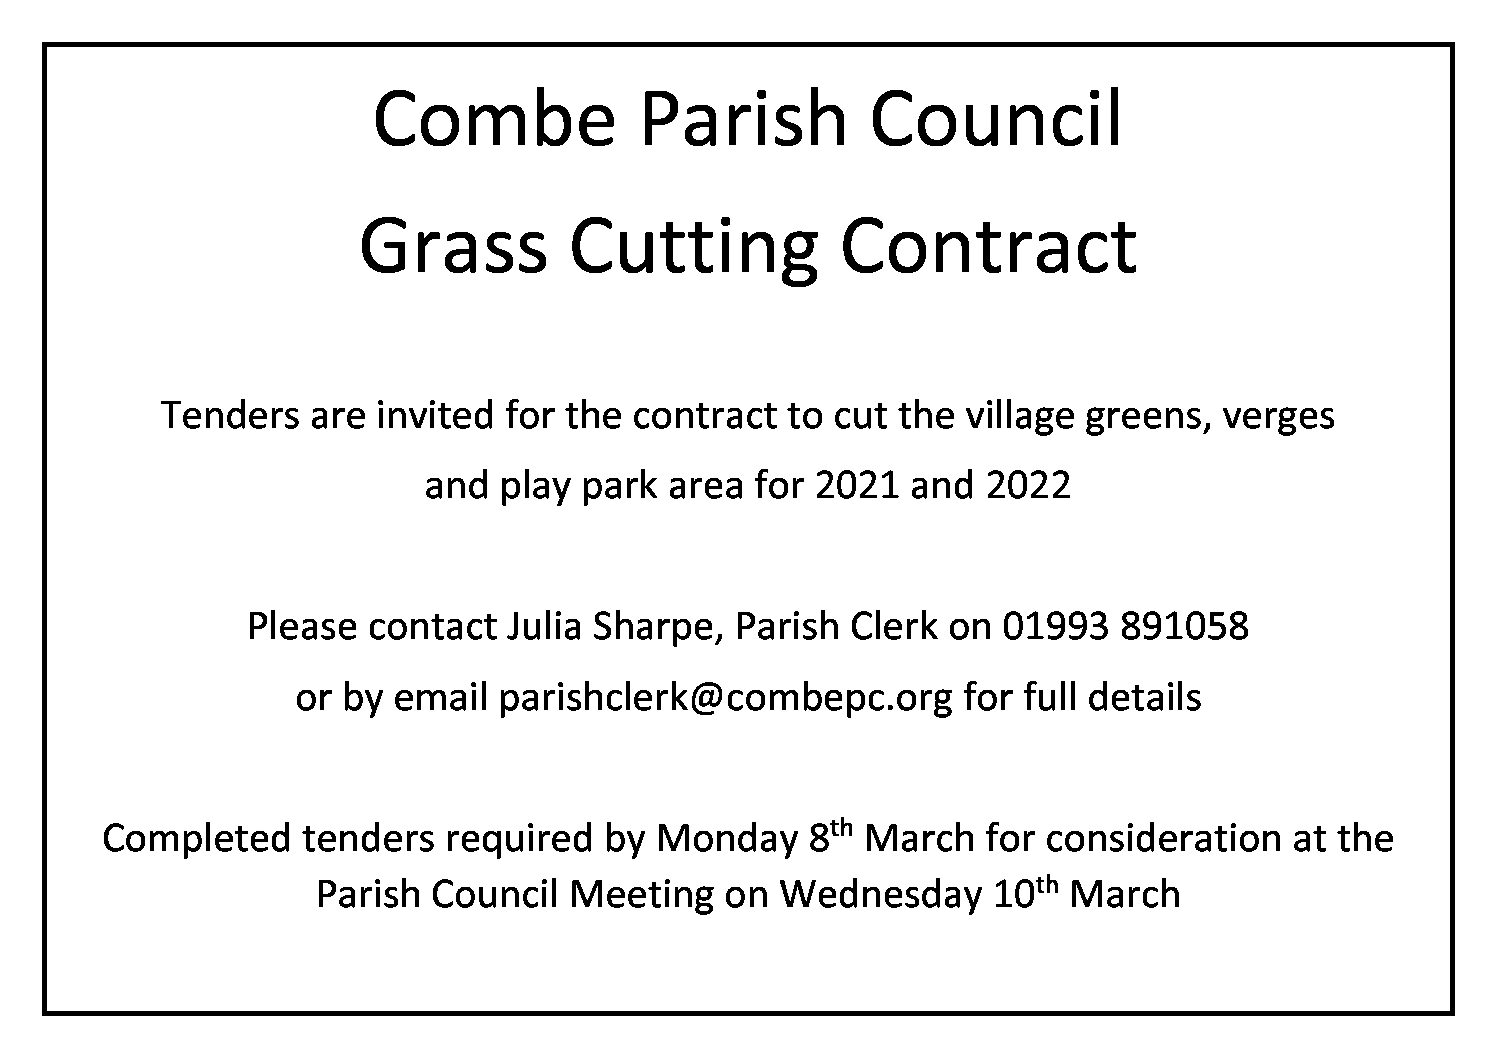 Grass Cutting Tender 2021 and 2022